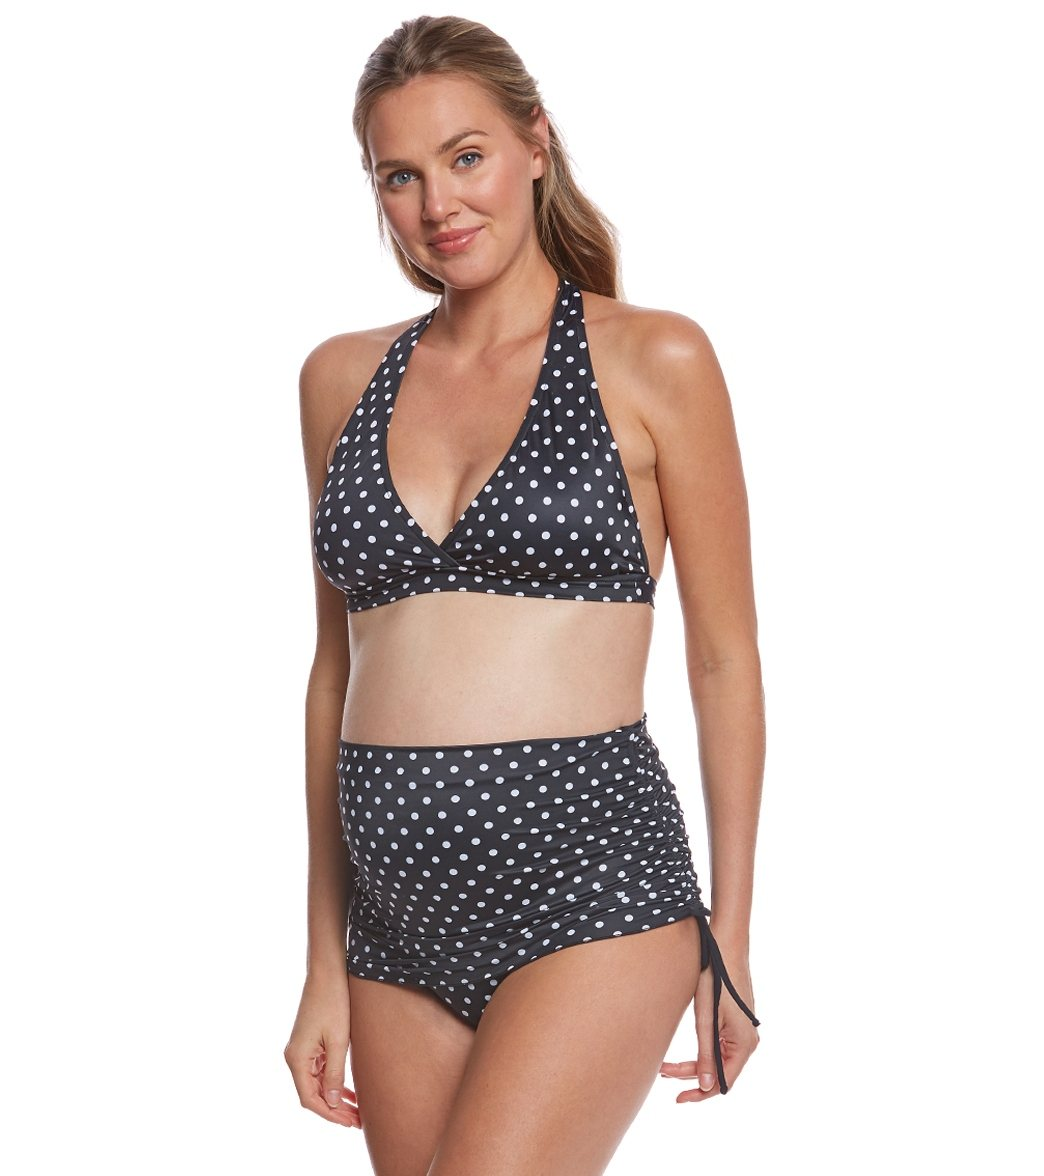 b8de9cfb28d Prego Swimwear Maternity Dot Ruched Two Piece Set at SwimOutlet.com ...